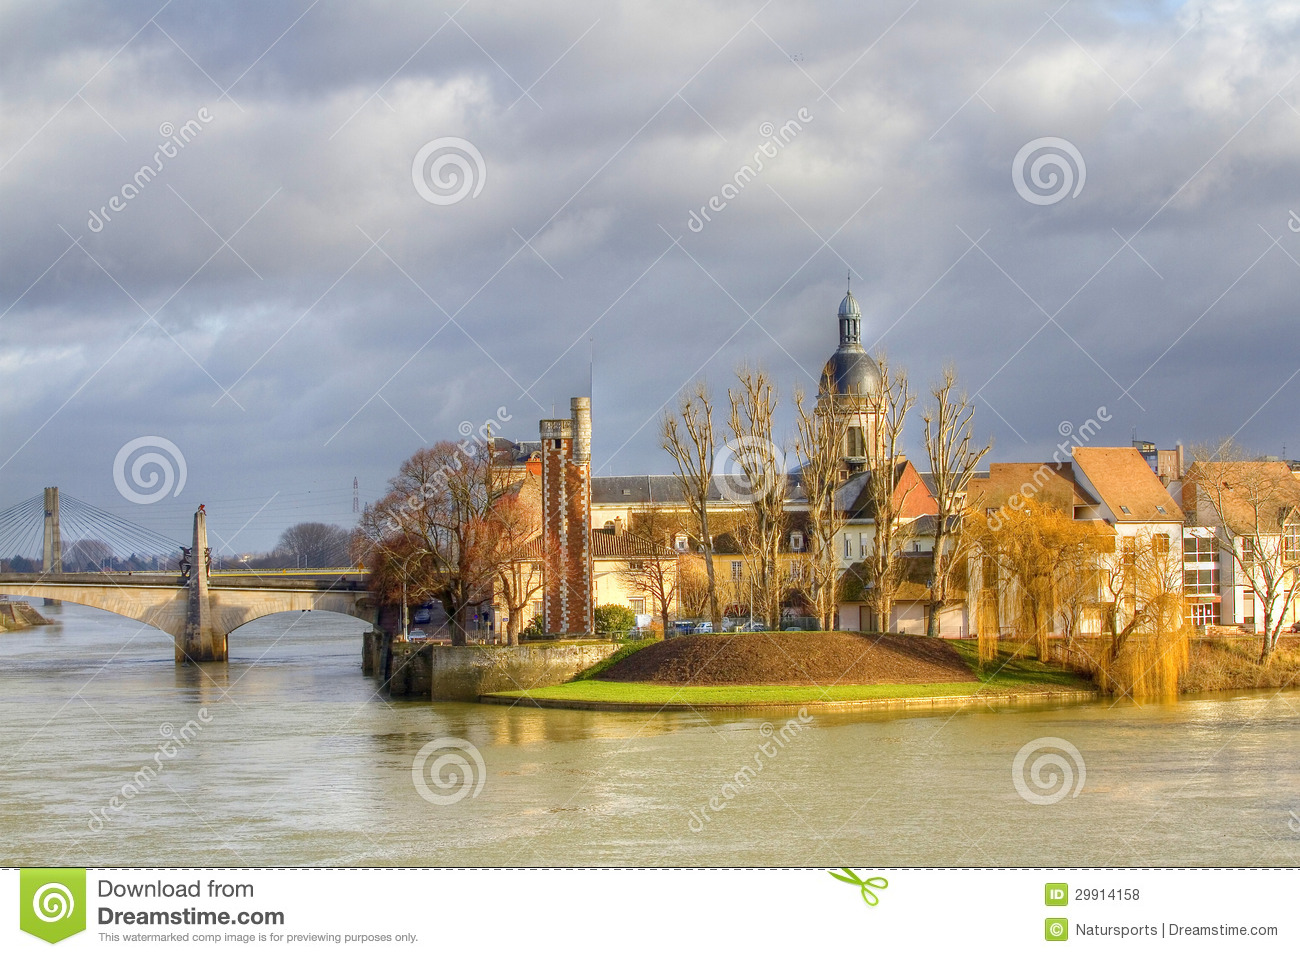 chalon sur saone stock photo image of bridge town burgundy 29914158. Black Bedroom Furniture Sets. Home Design Ideas